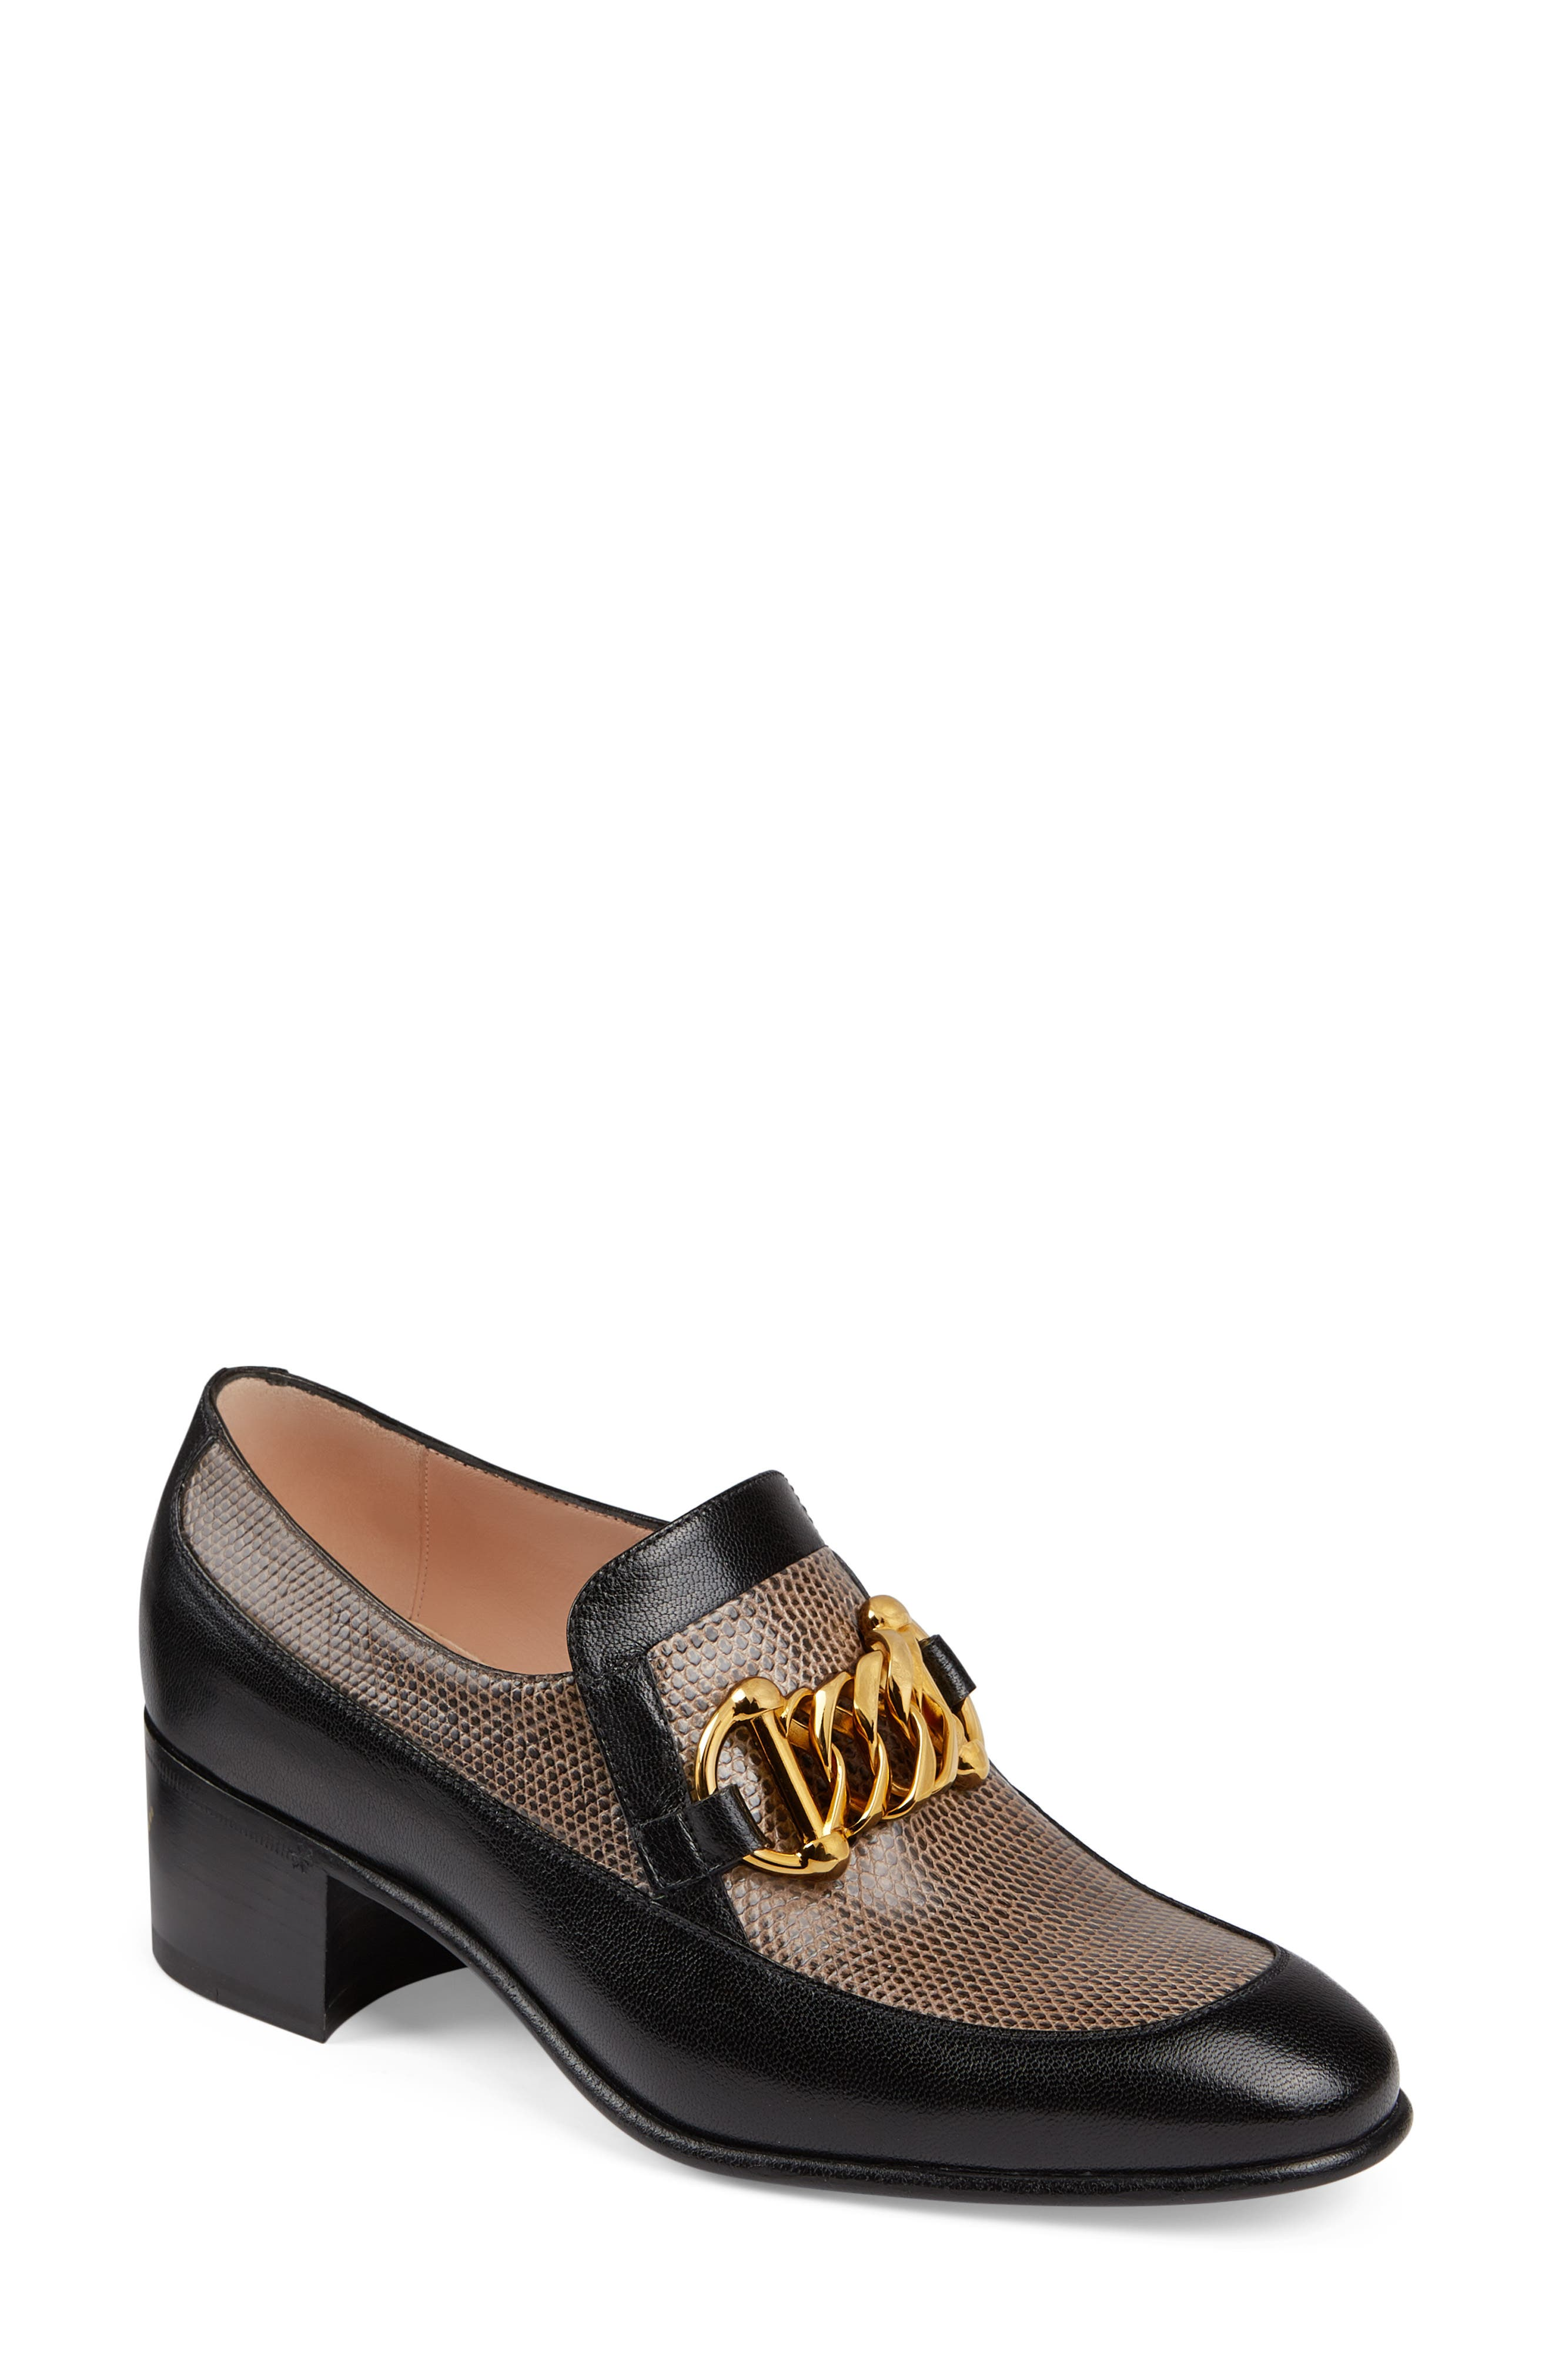 Gucci Loafers Ebal Loafer Pump